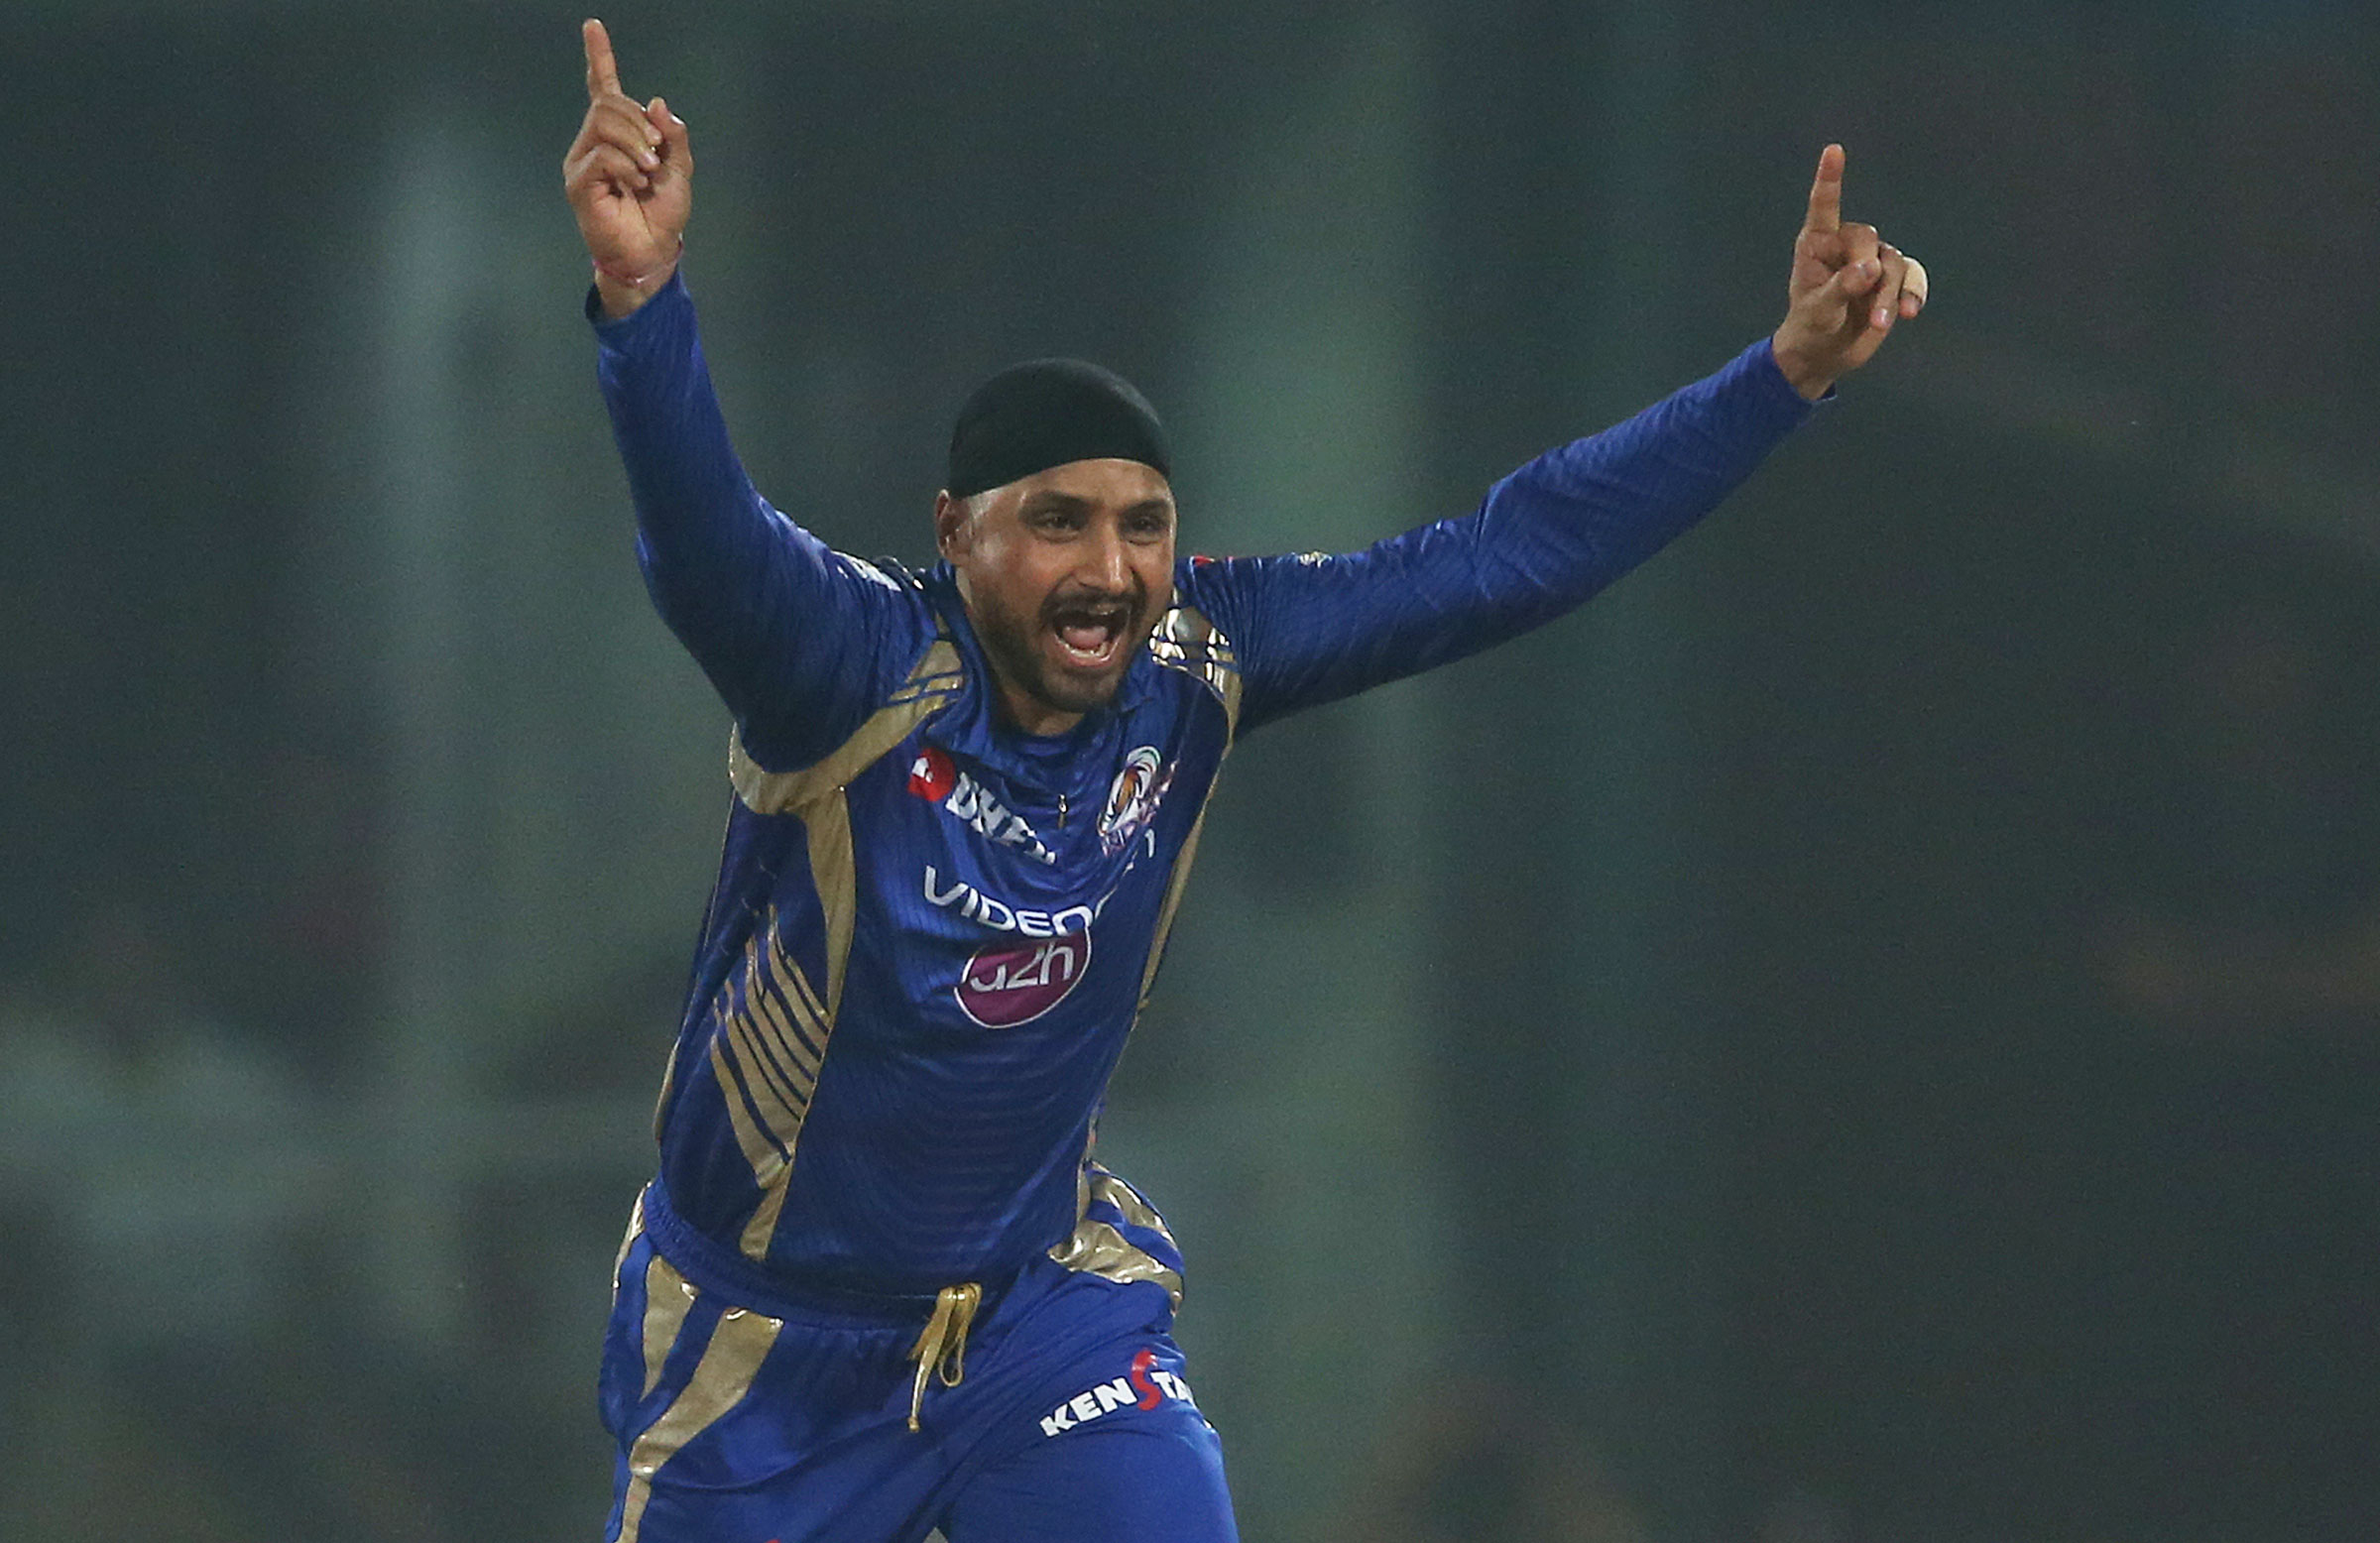 Harbhajan has been a mainstay of Mumbai's side // BCCI